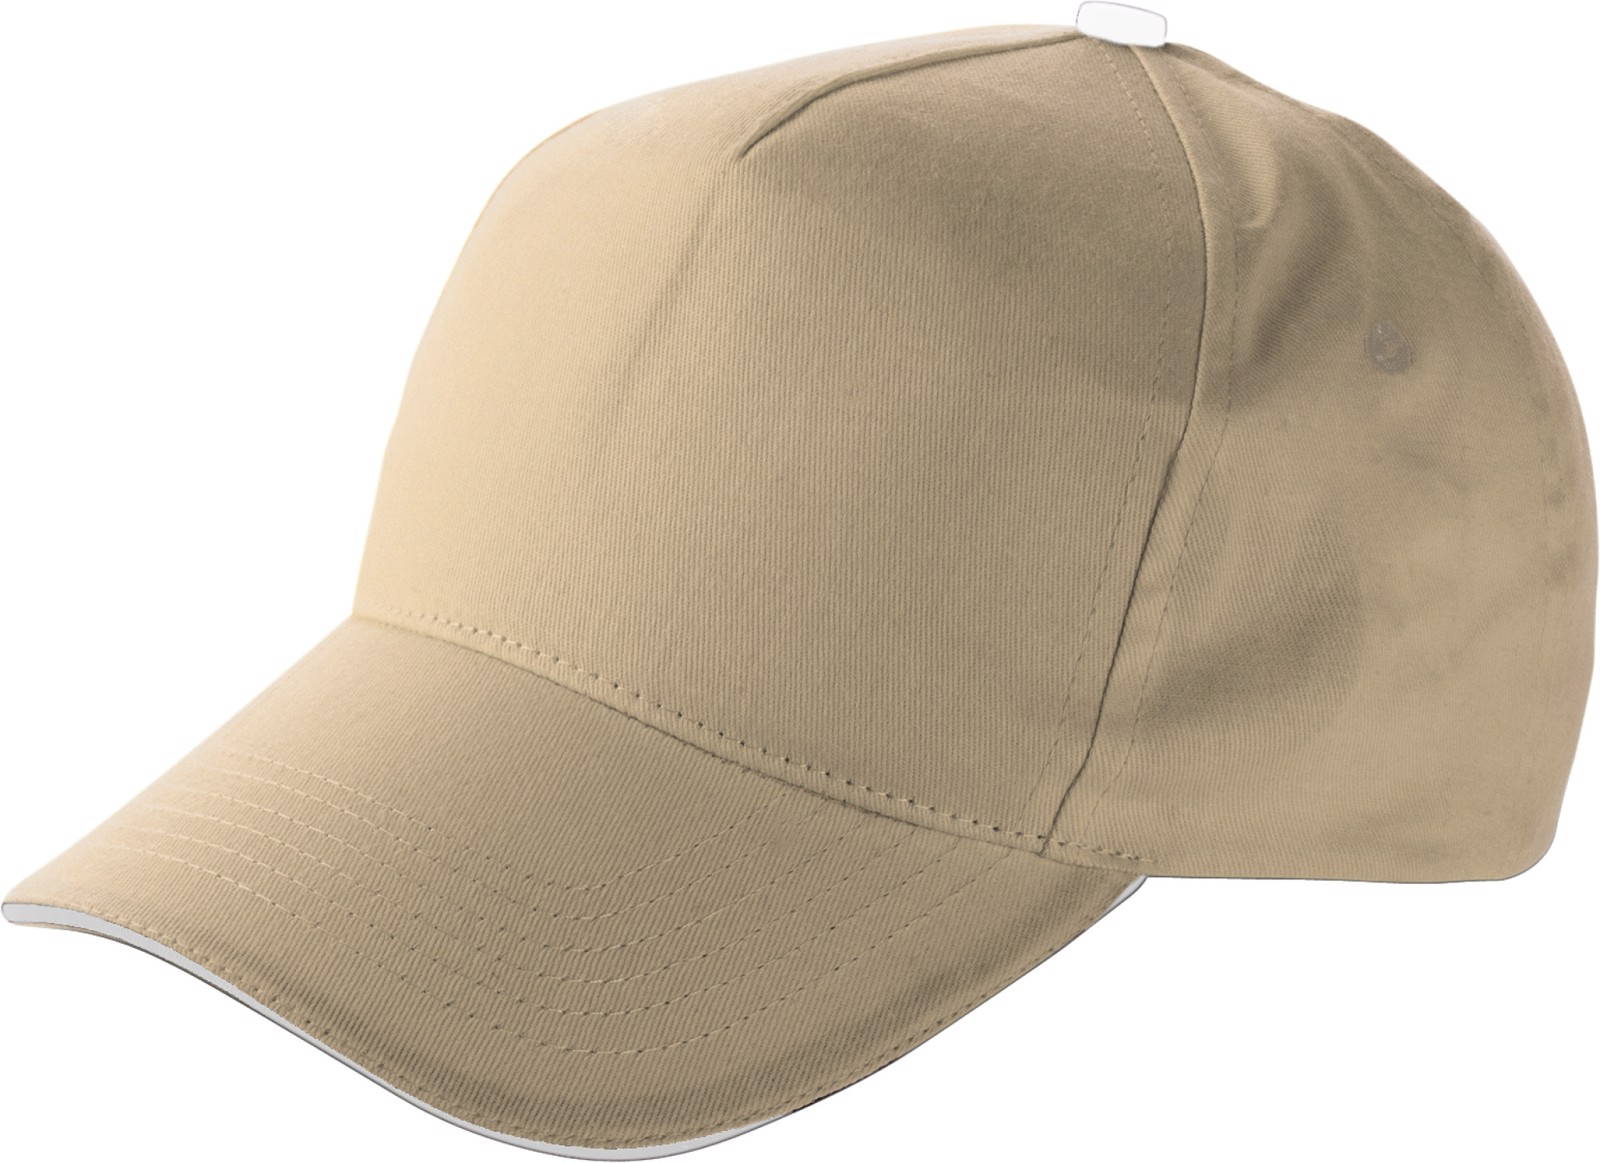 Cotton cap - Khaki